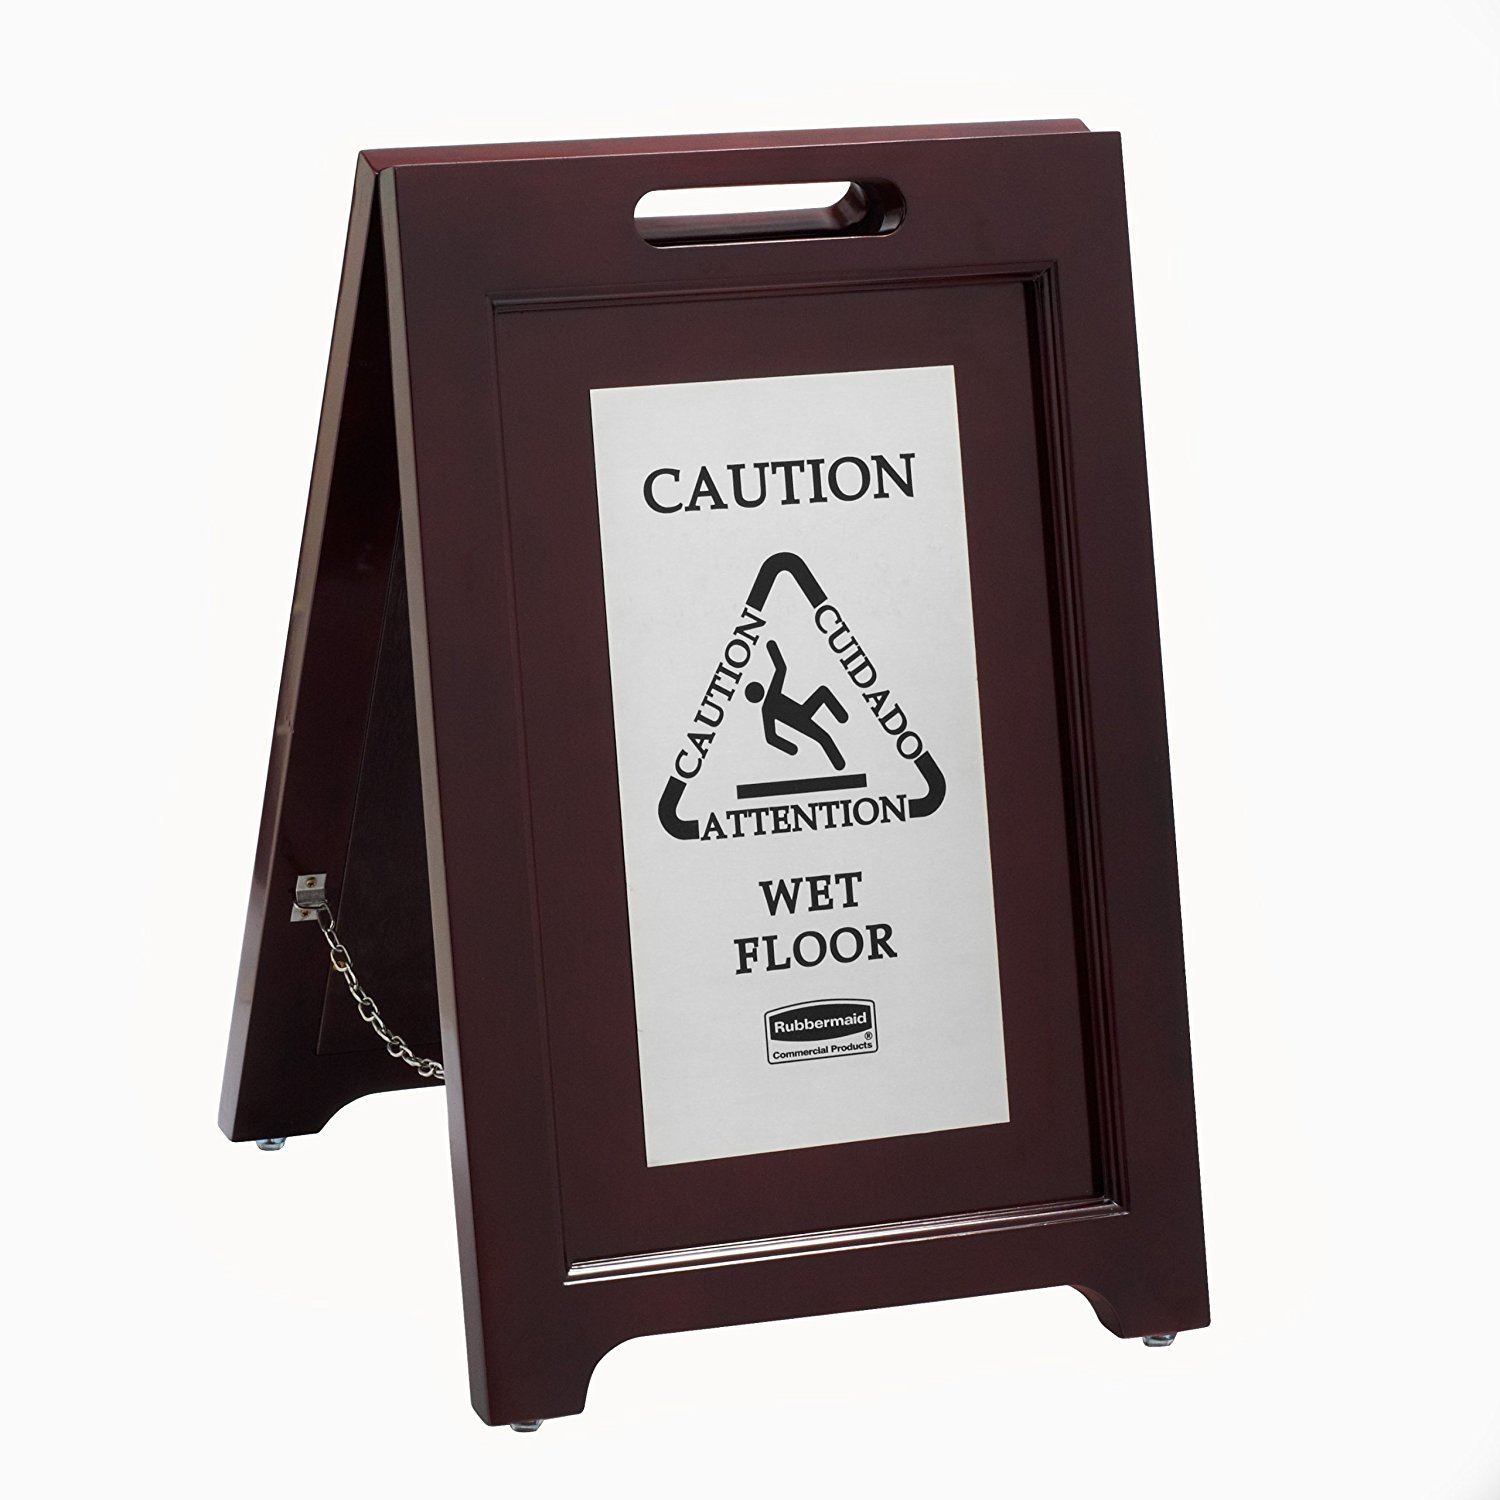 S/o Executive Wood/SS;Multi-Ling. Caution Sign